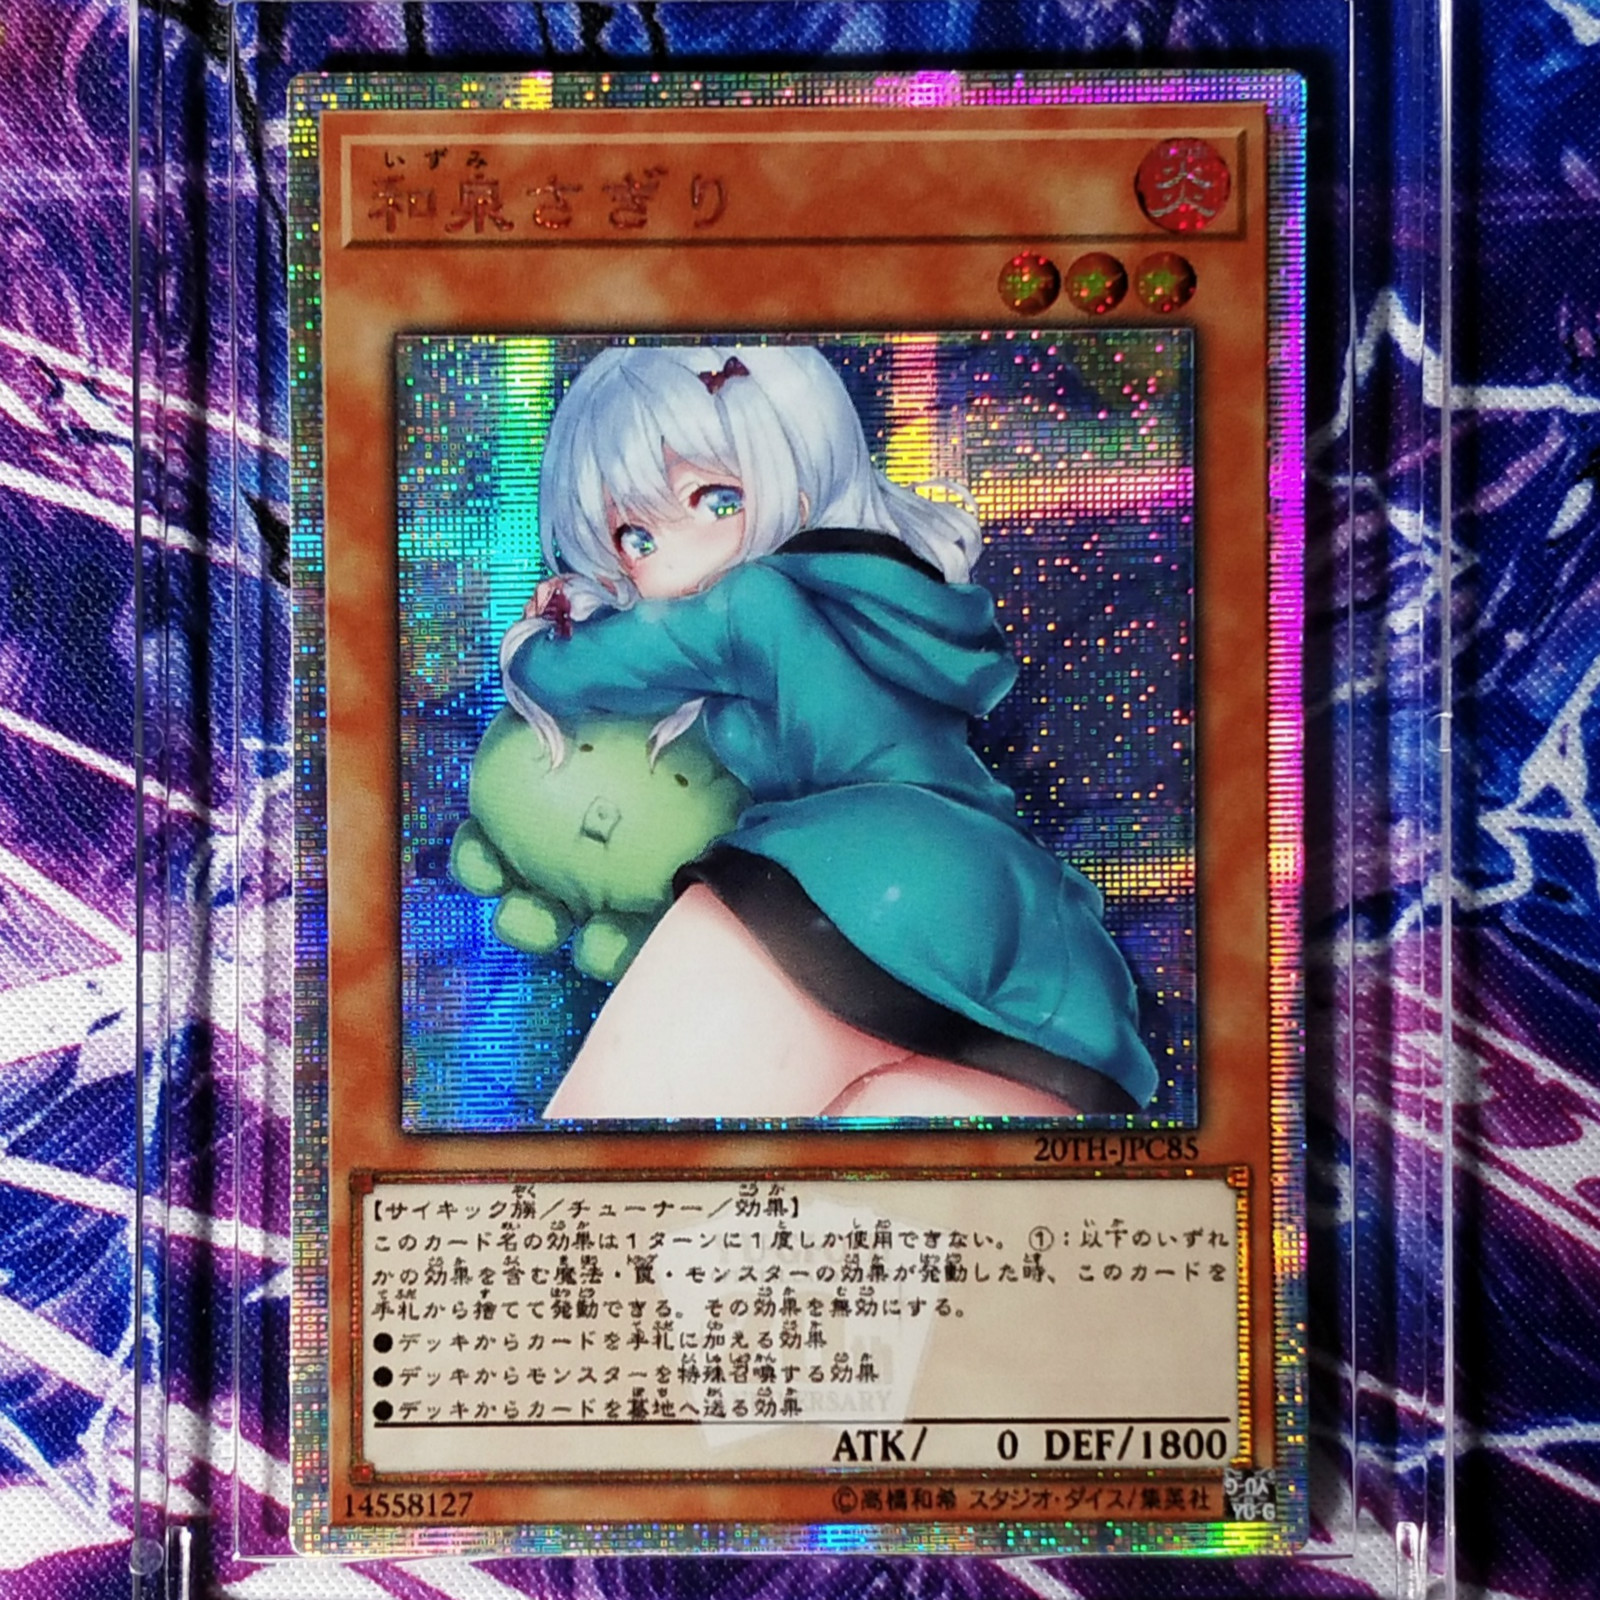 Yu Gi Oh DIY Spring Yarn Mist Colorful Toys Hobbies Hobby Collectibles Game Collection Anime Cards